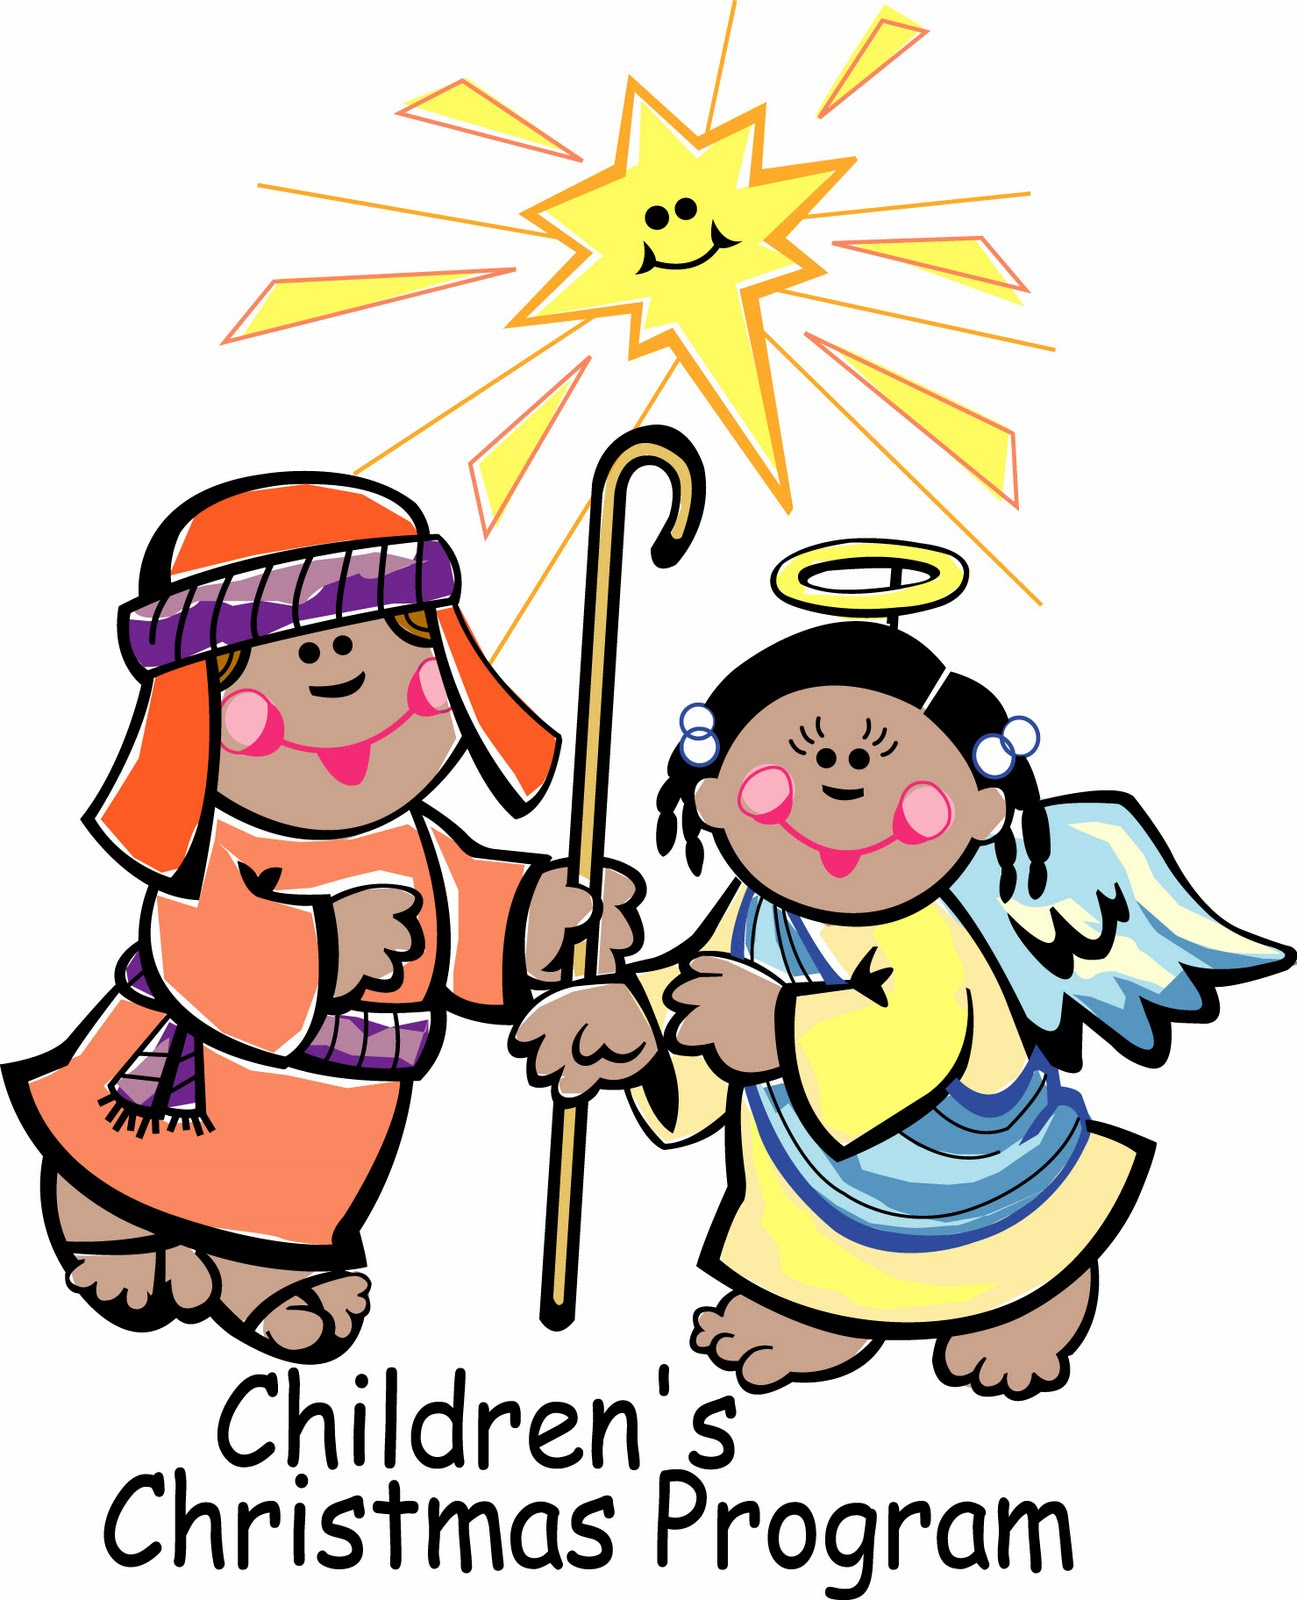 Christmas Program Clipart - Clipart Kid